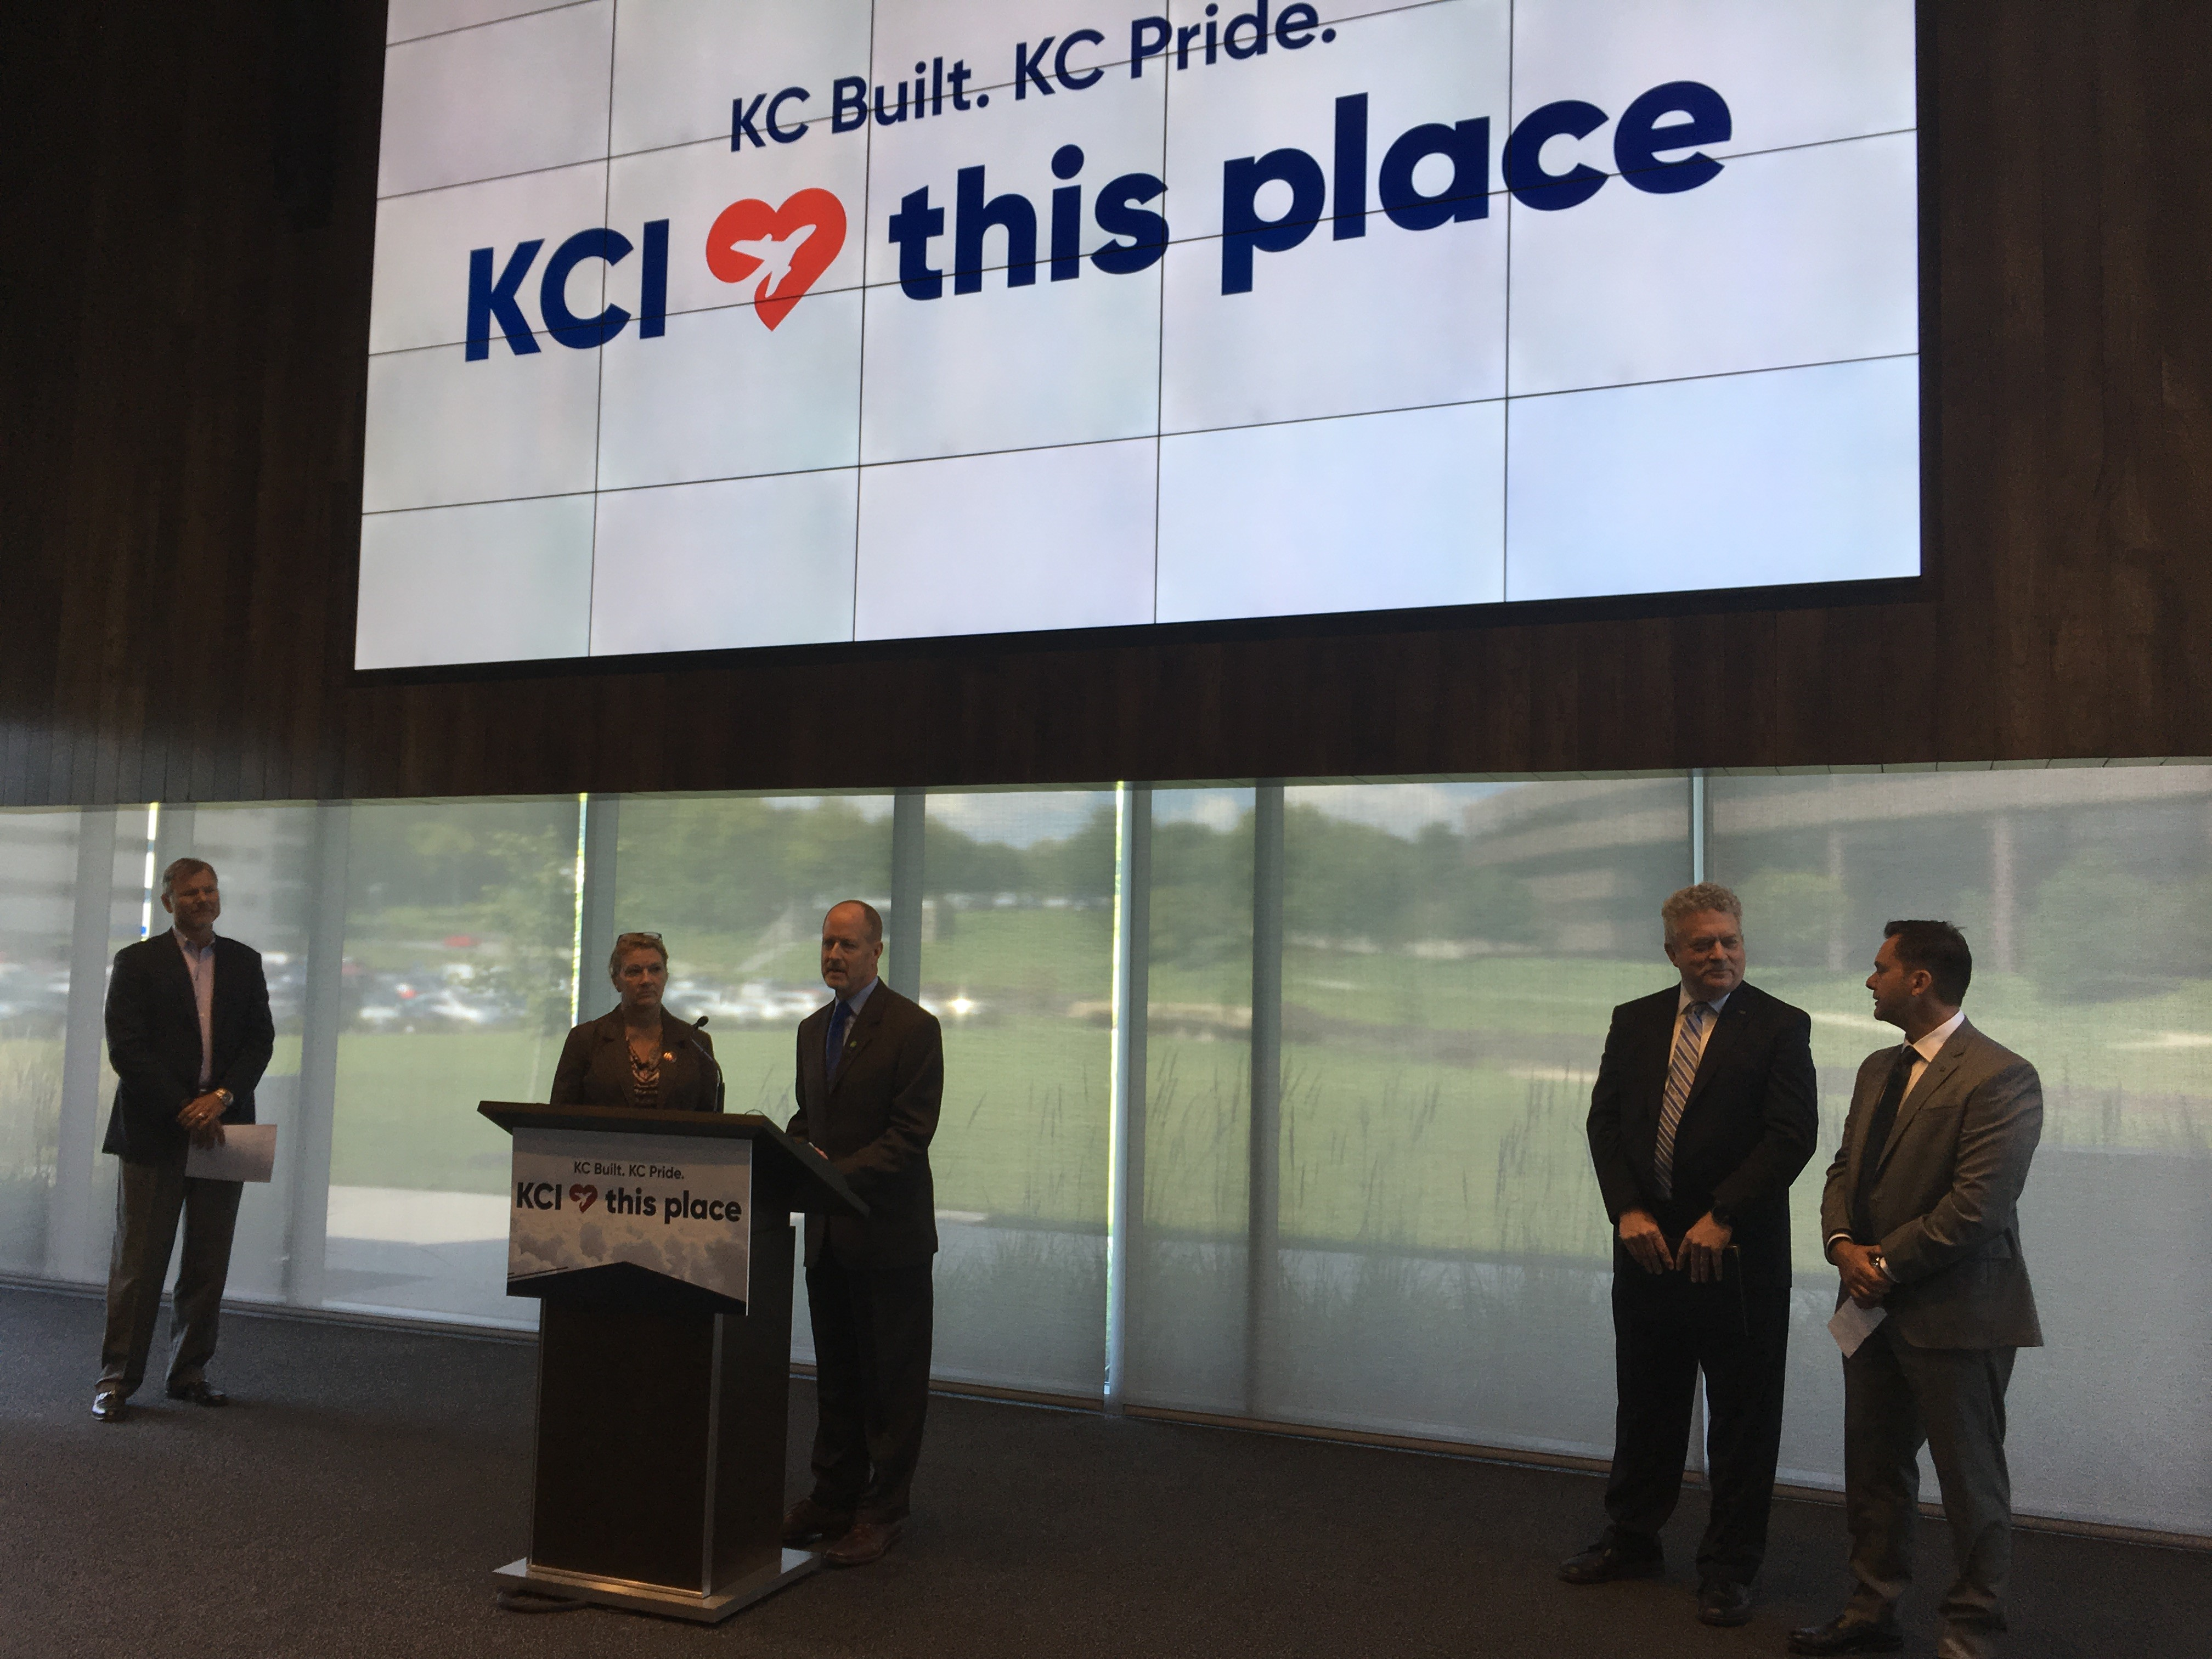 Burns Mcdonnell Sweetens Kci Airport Bid With Promise To Hire Local